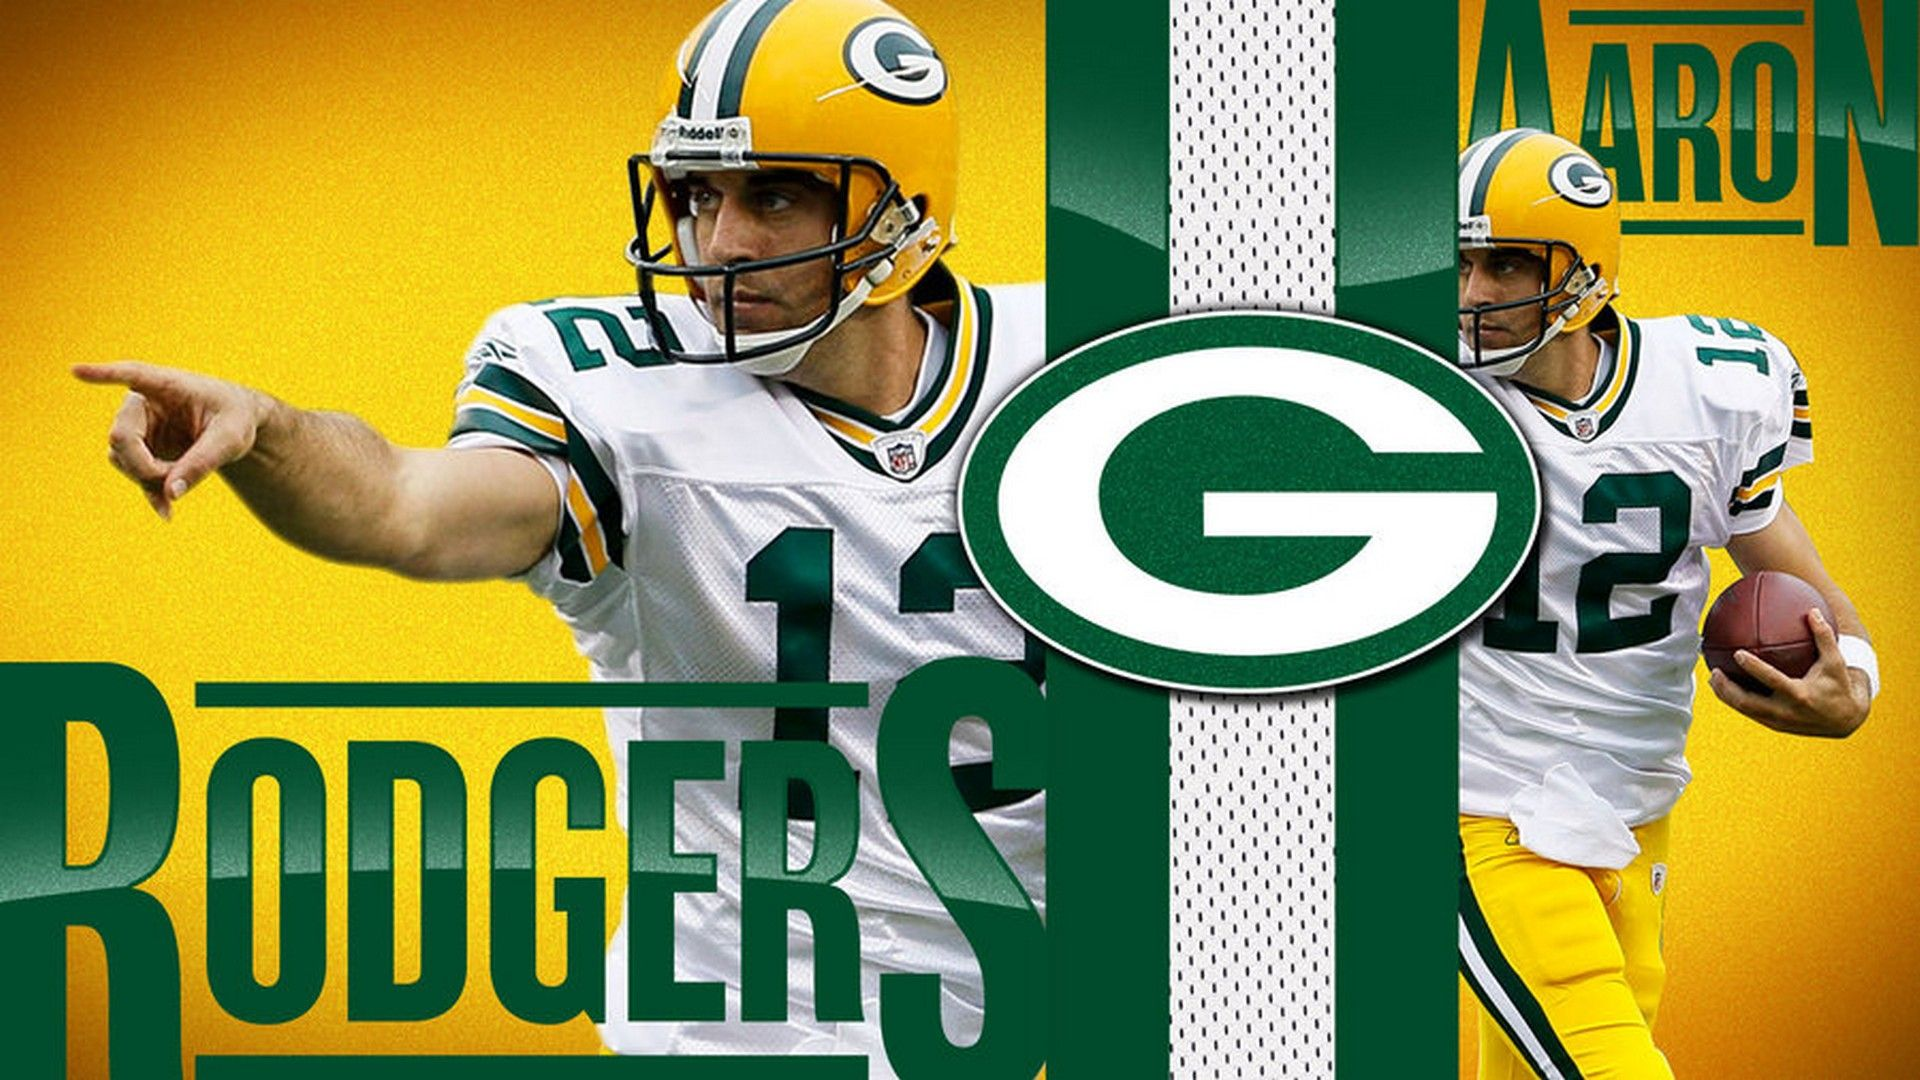 Nfl Wallpapers Nfl Football Wallpaper Aaron Rodgers Football Wallpaper